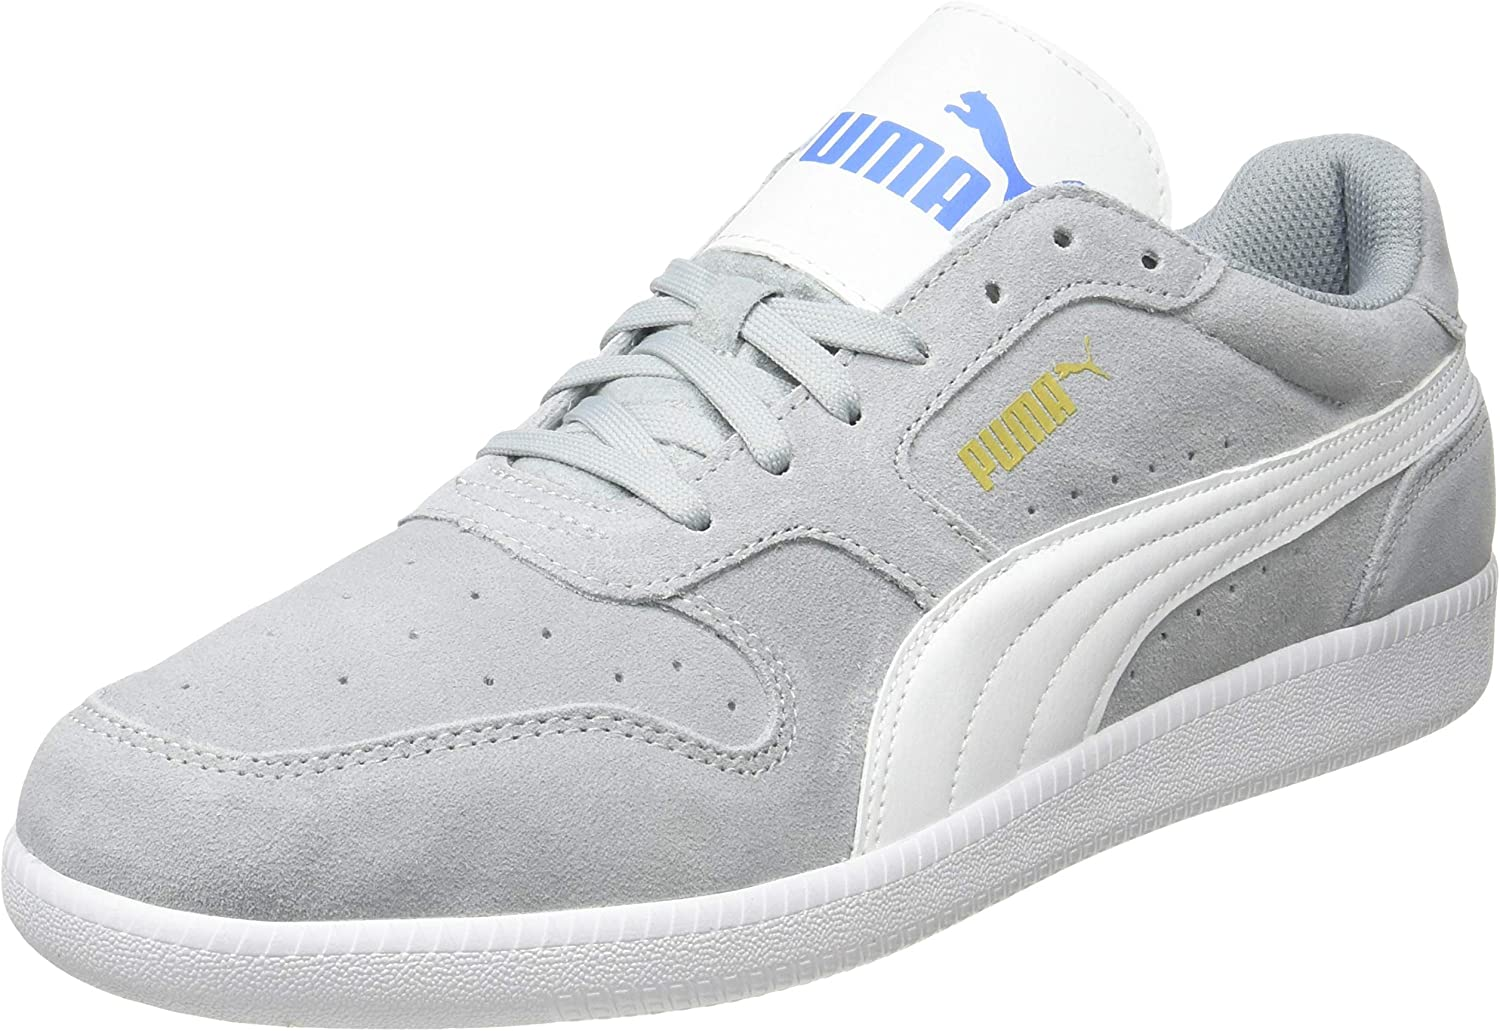 PUMA Men's Icra Trainer Sd Sneaker